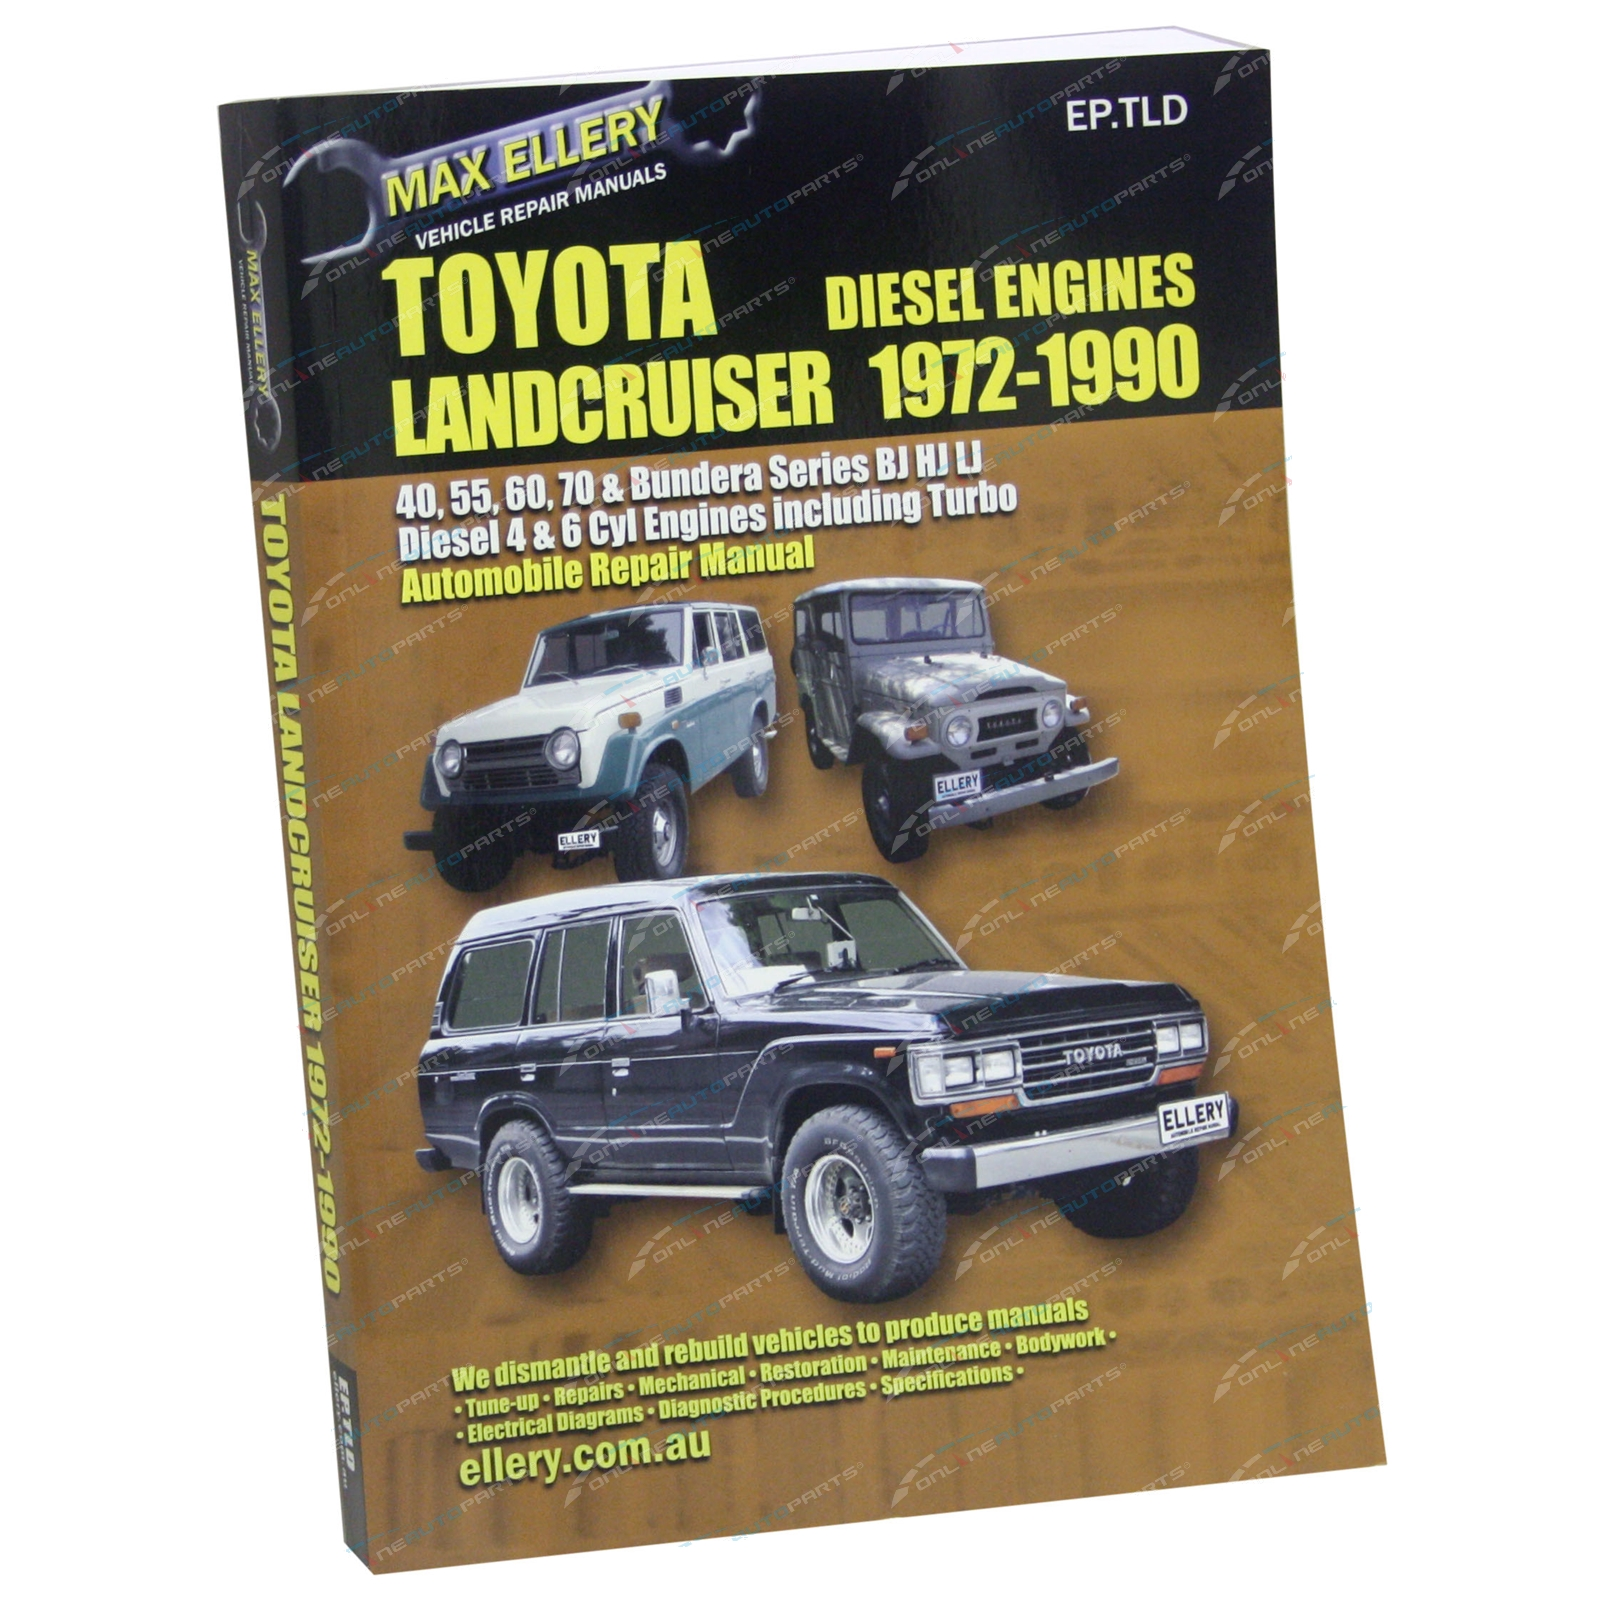 Diesel user user manuals book cars user manuals array workshop manual book max ellery onlineautoparts rh onlineautoparts com au fandeluxe Image collections